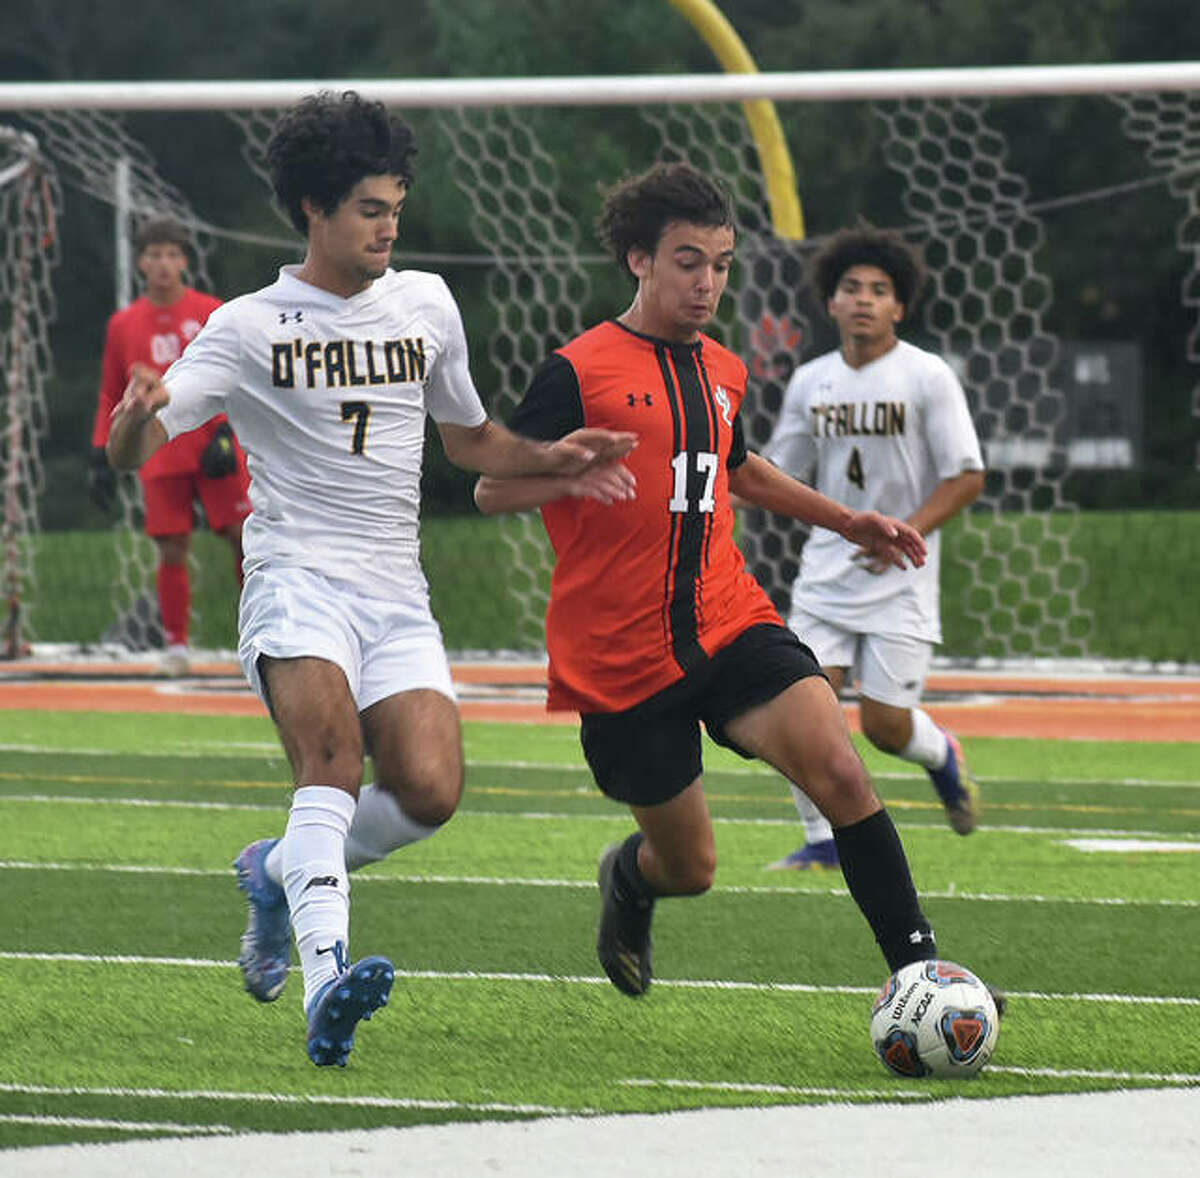 Edwardsville's Wyatt Erber, right, keeps the ball away from O'Fallon's Andre Robertson in the first half.